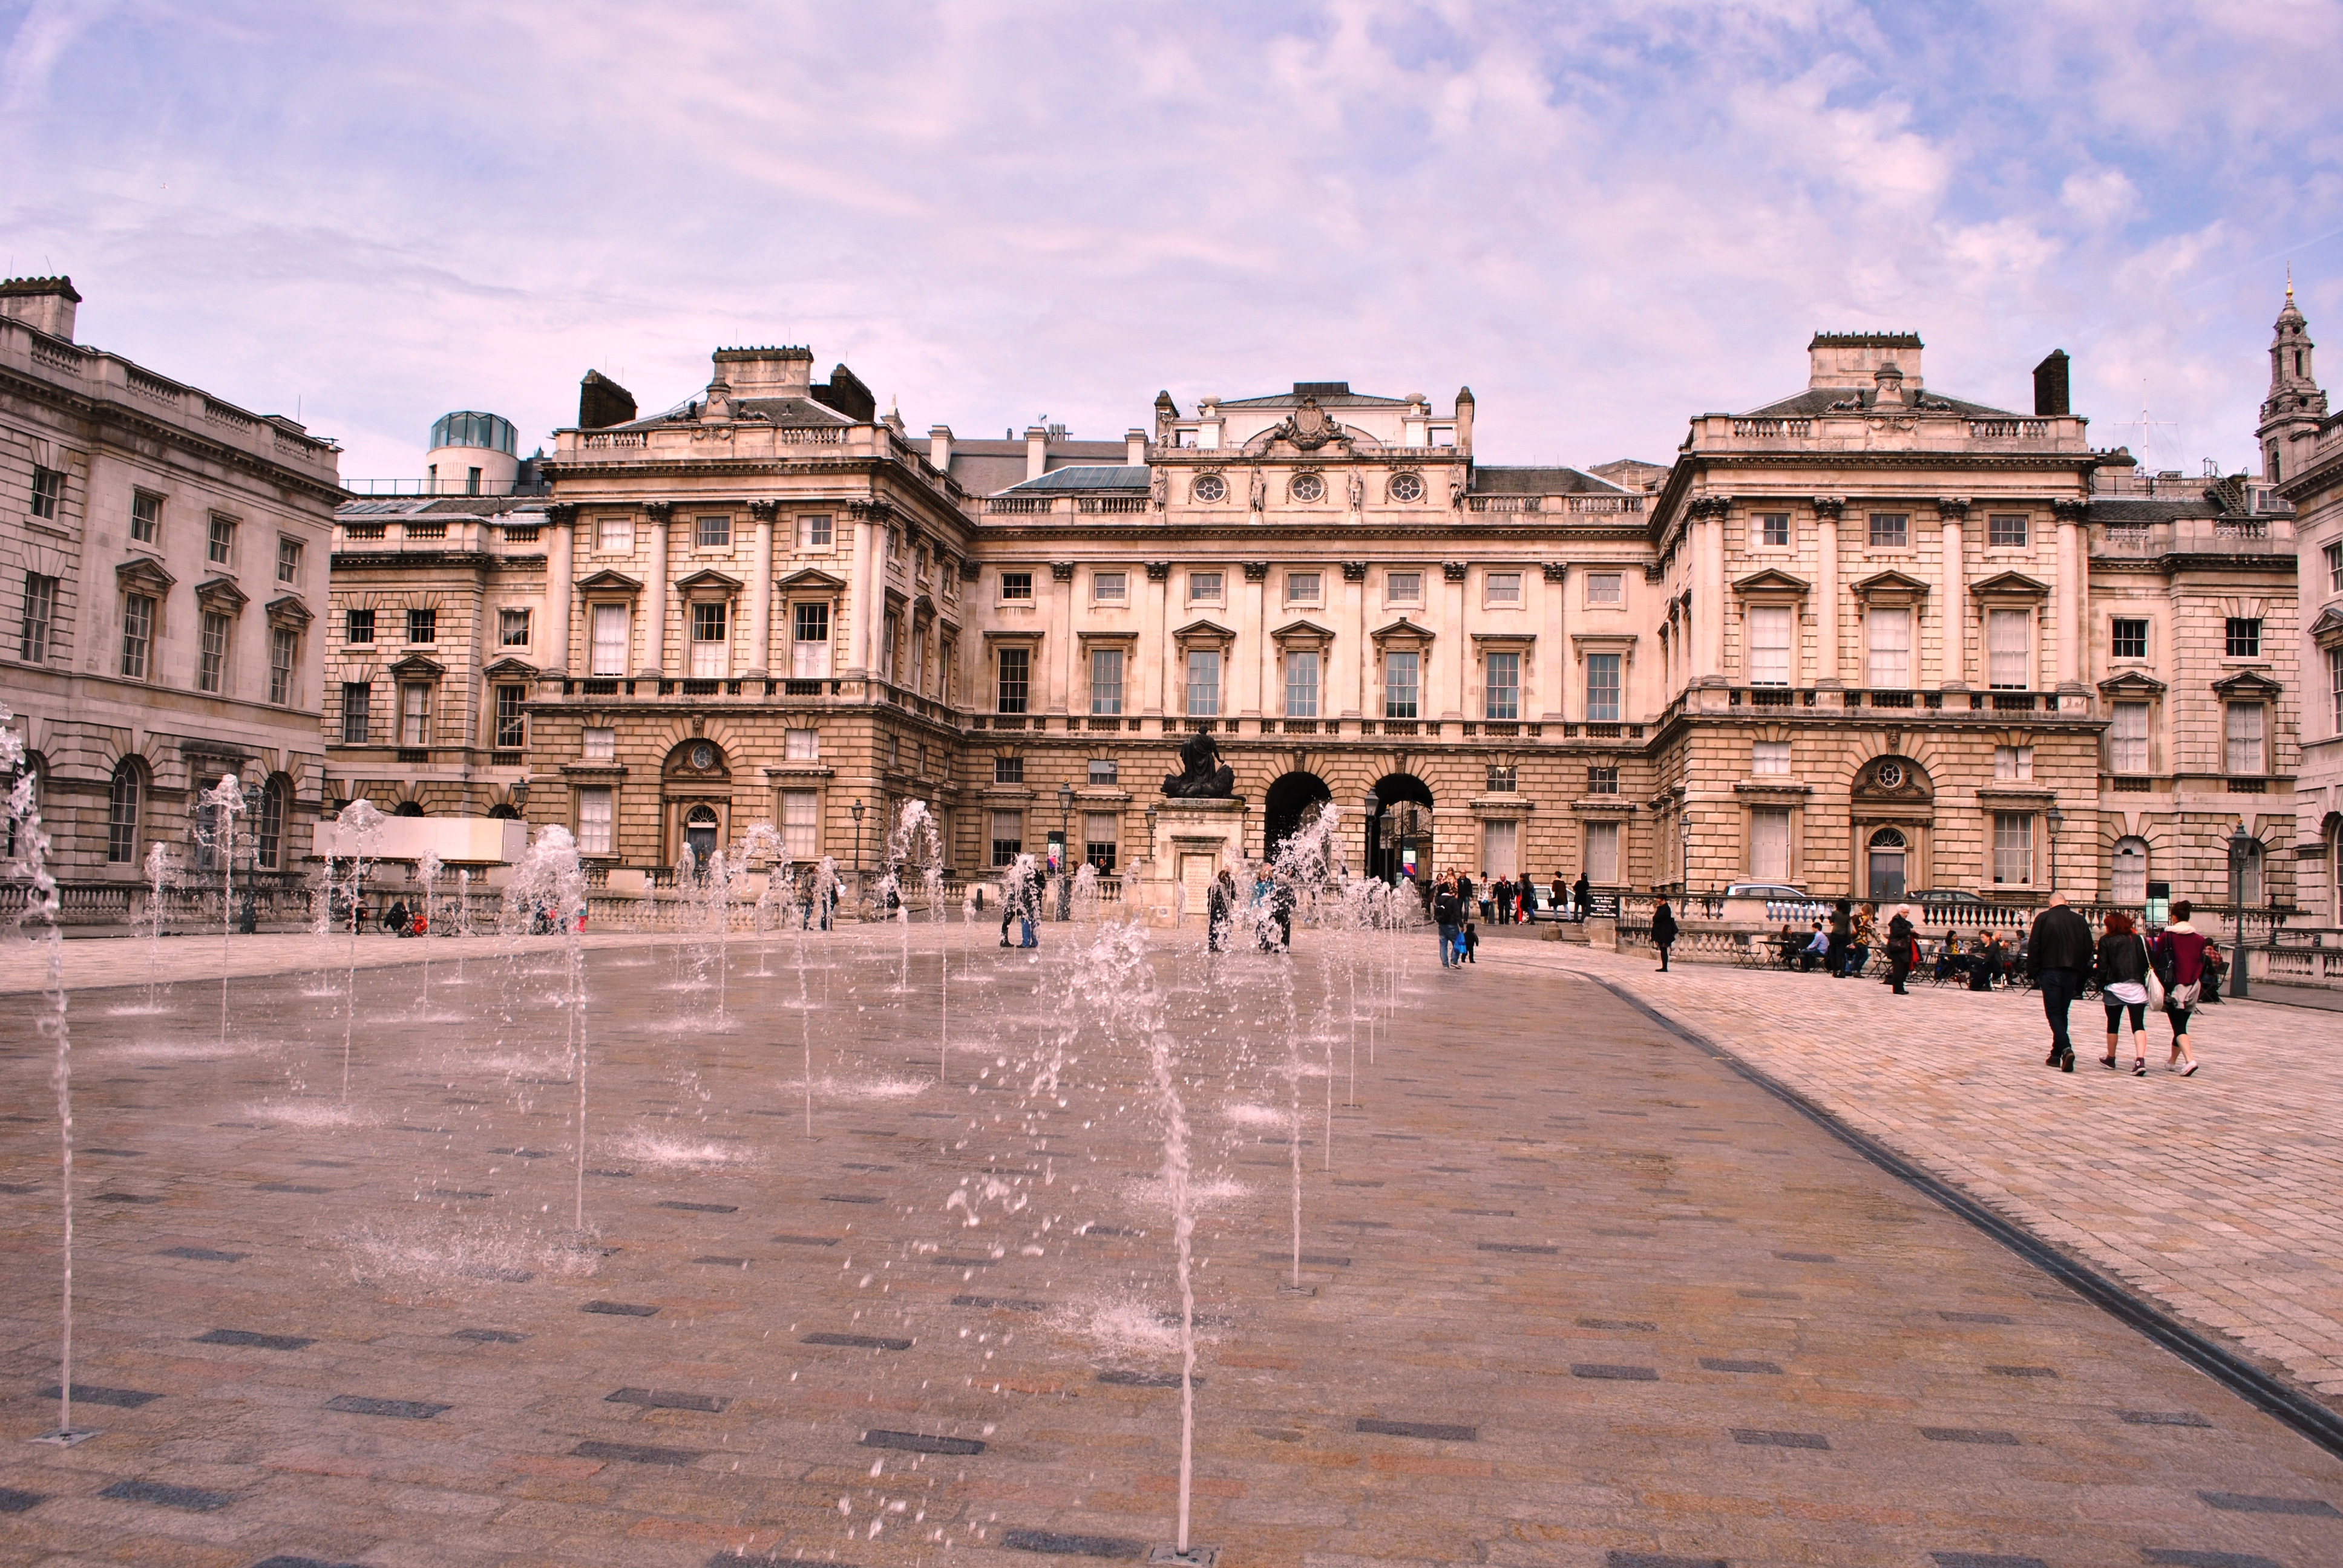 Somerset house wikipedia the dancing fountains were installed in the 1990s somerset house aiddatafo Choice Image